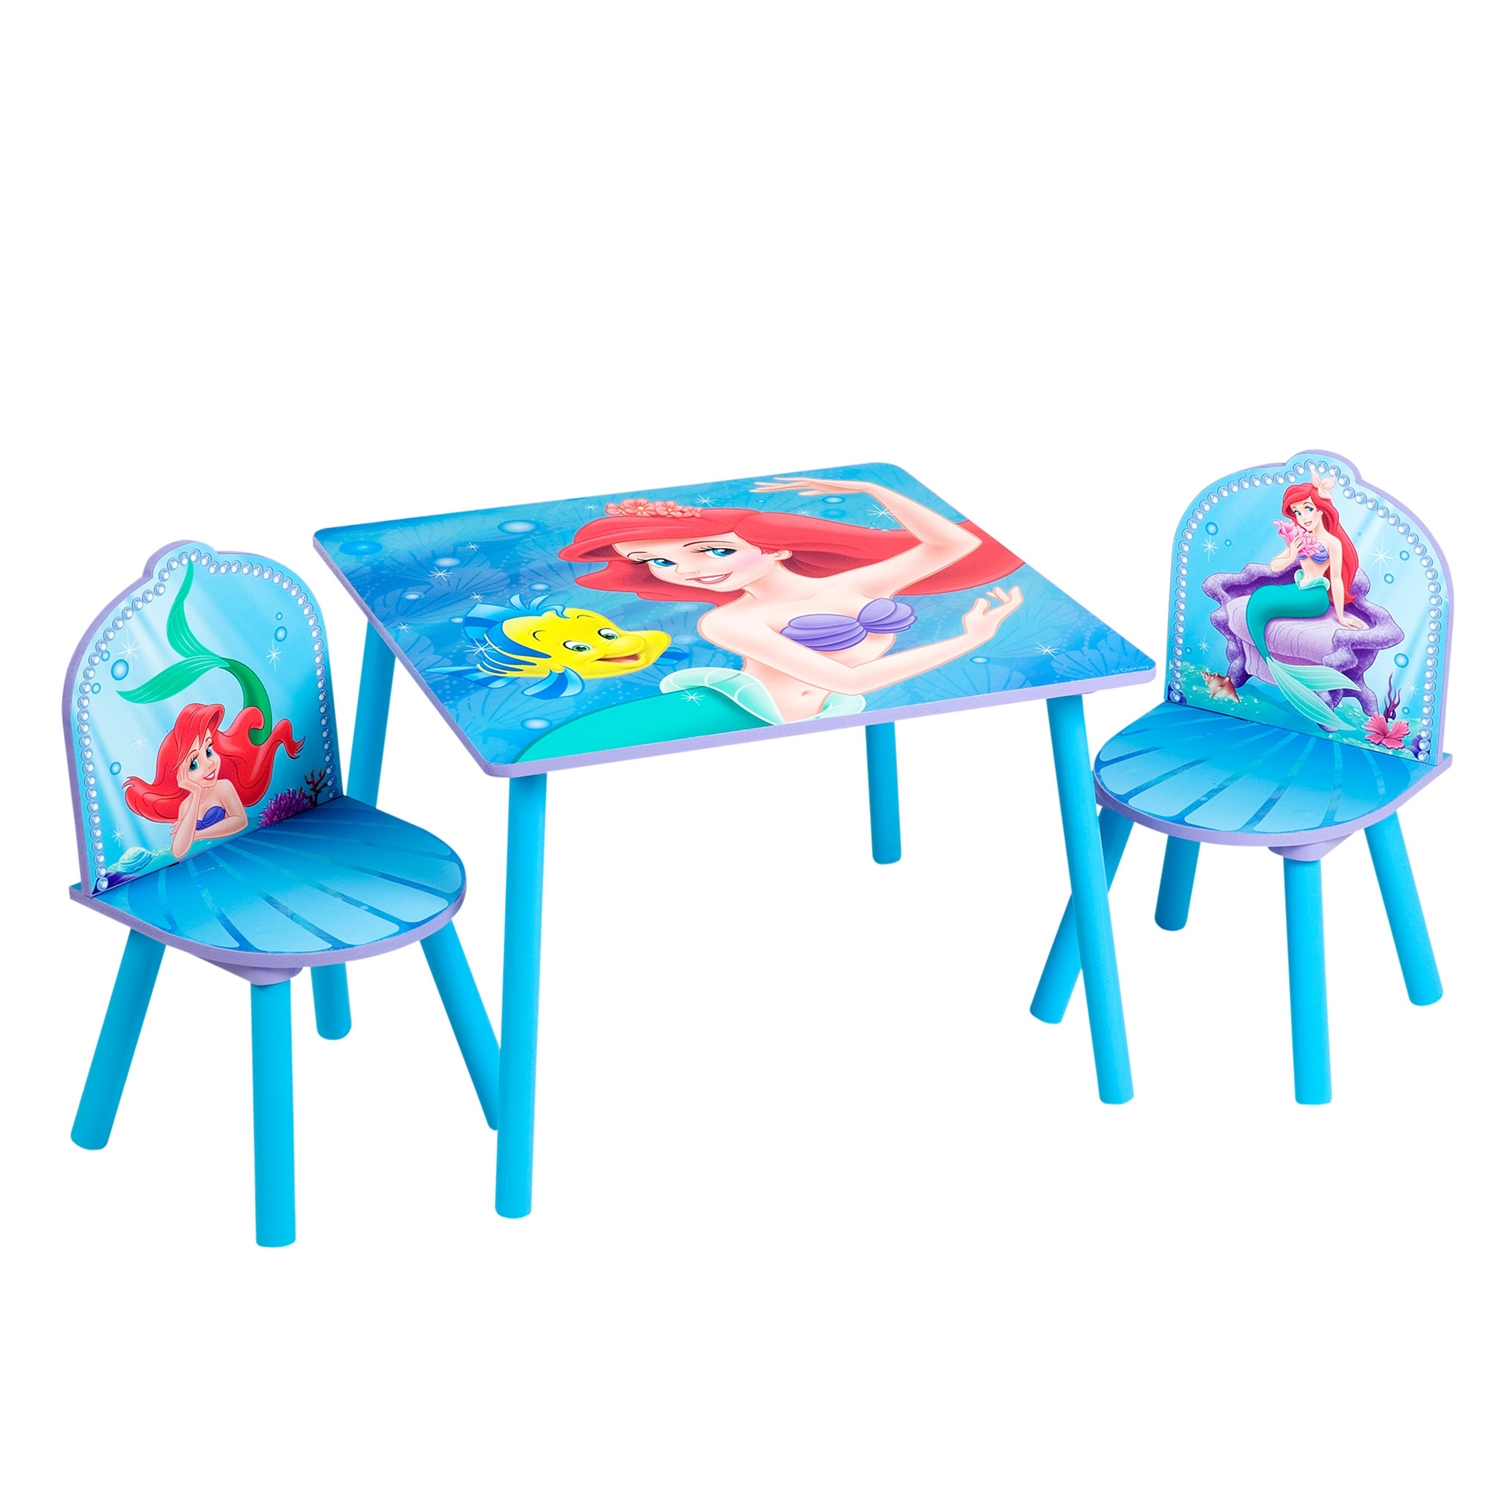 the mermaid chair amazon adirondack chairs theme décor for kids  interior designing ideas